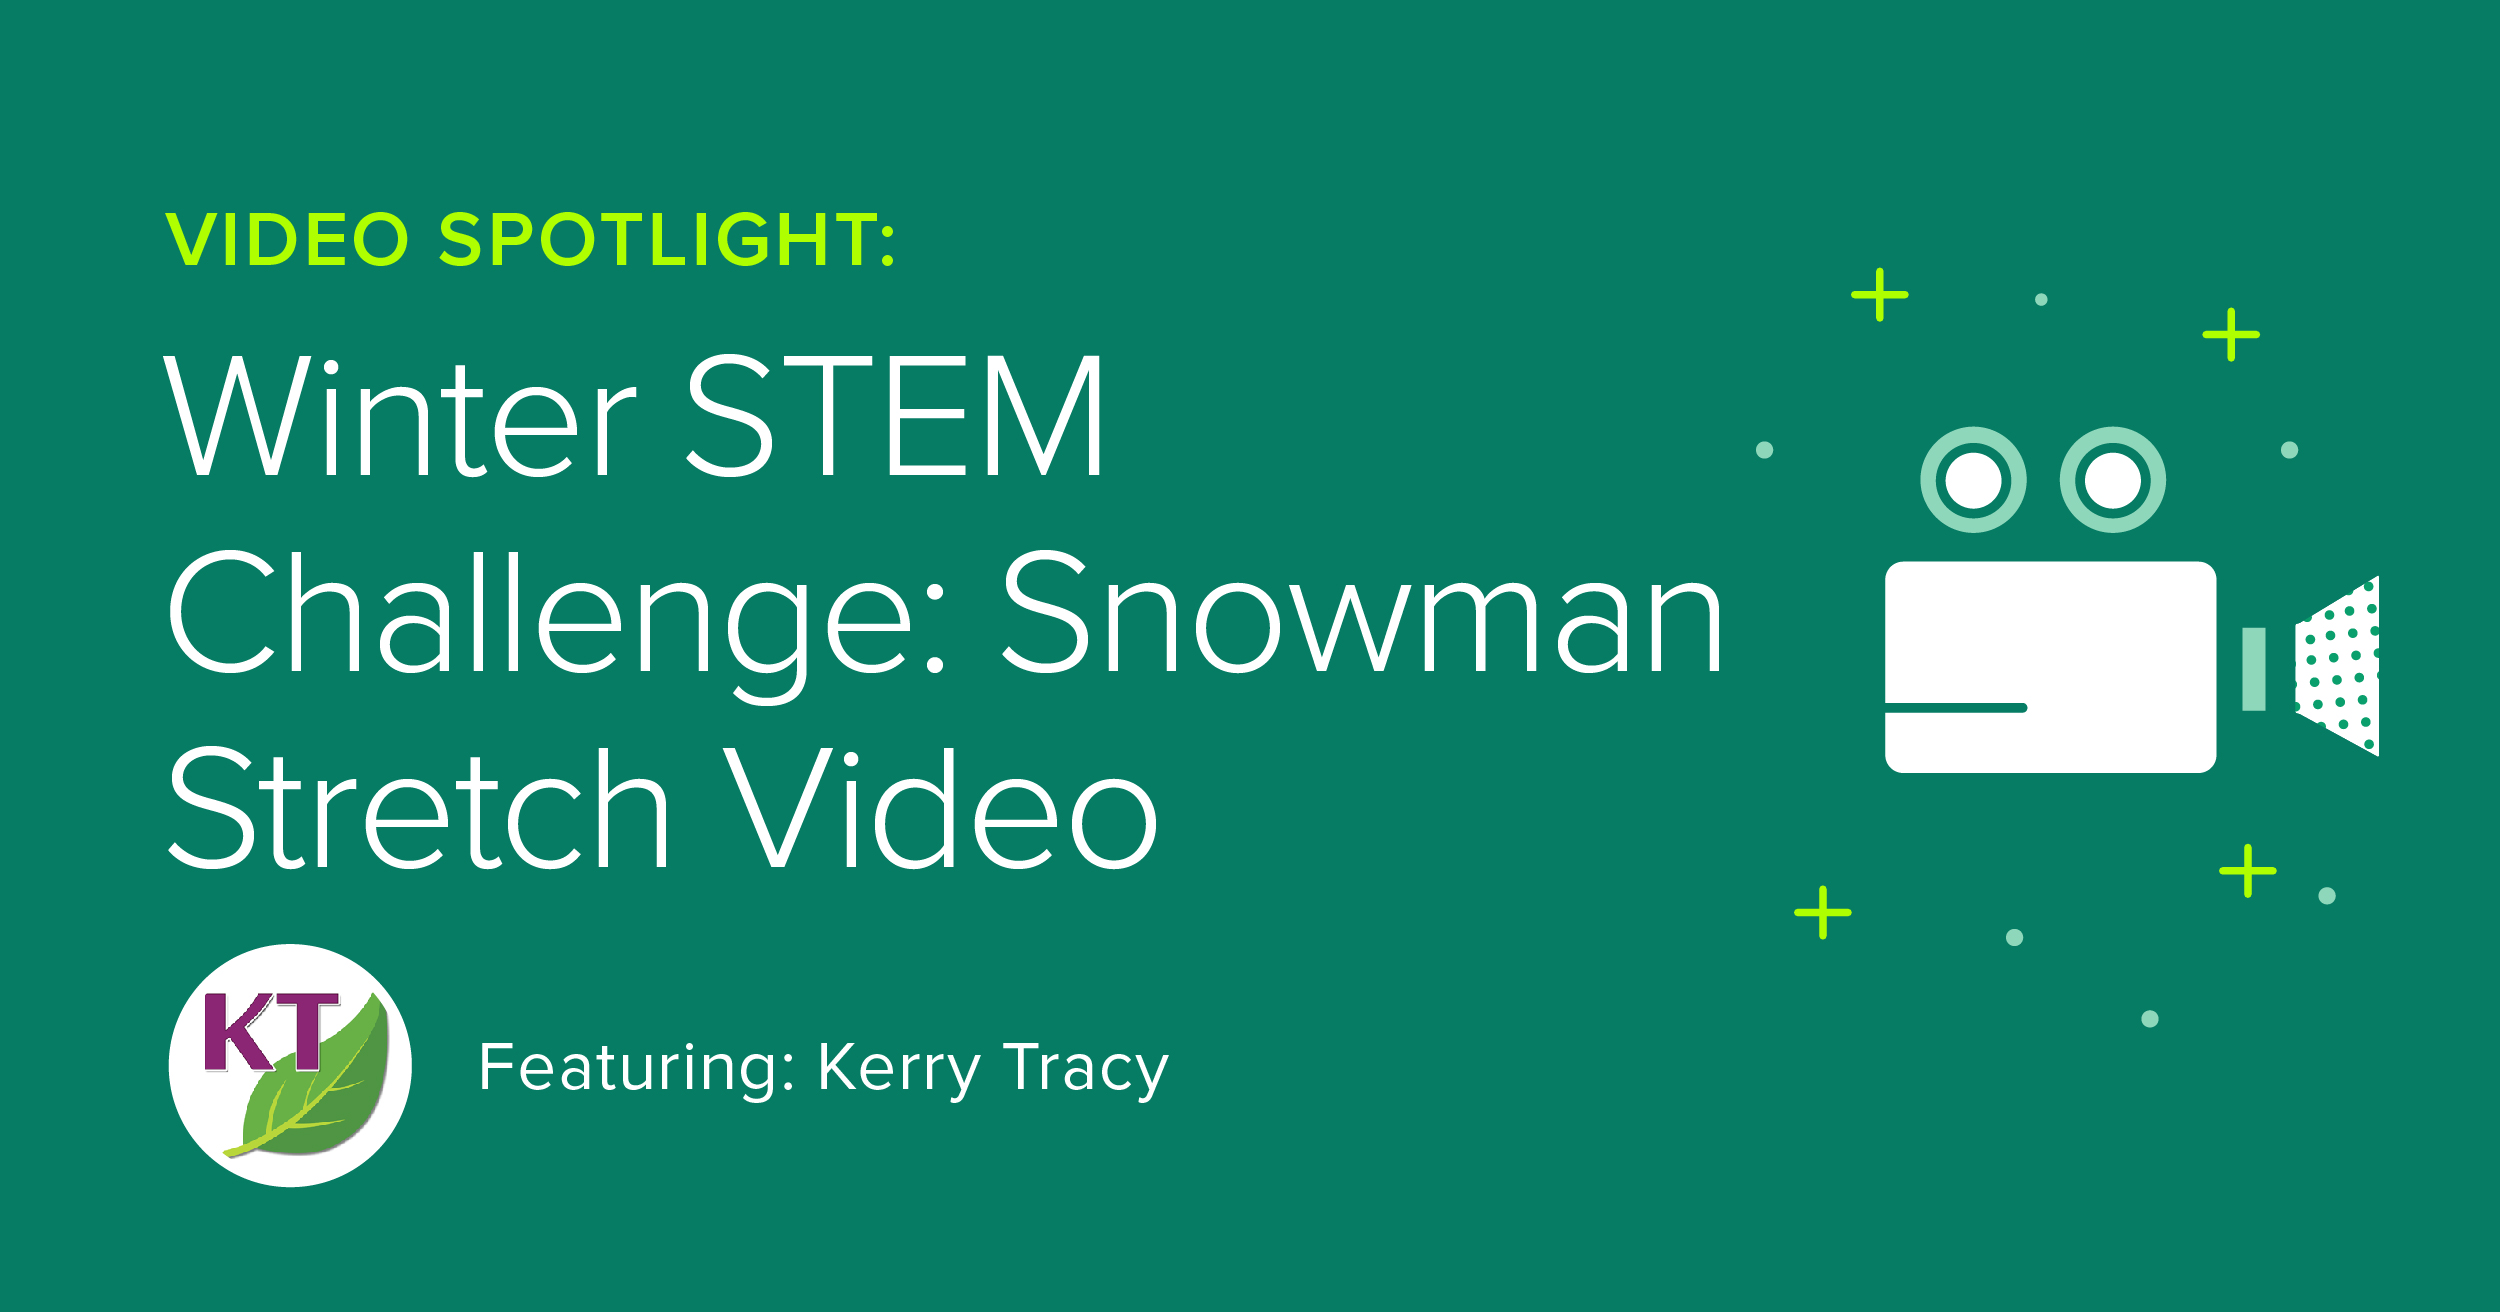 """My sales have gone up dramatically since starting with video"", says Kerry Tracy. See how she shares her STEM challenges with Video on TpT."